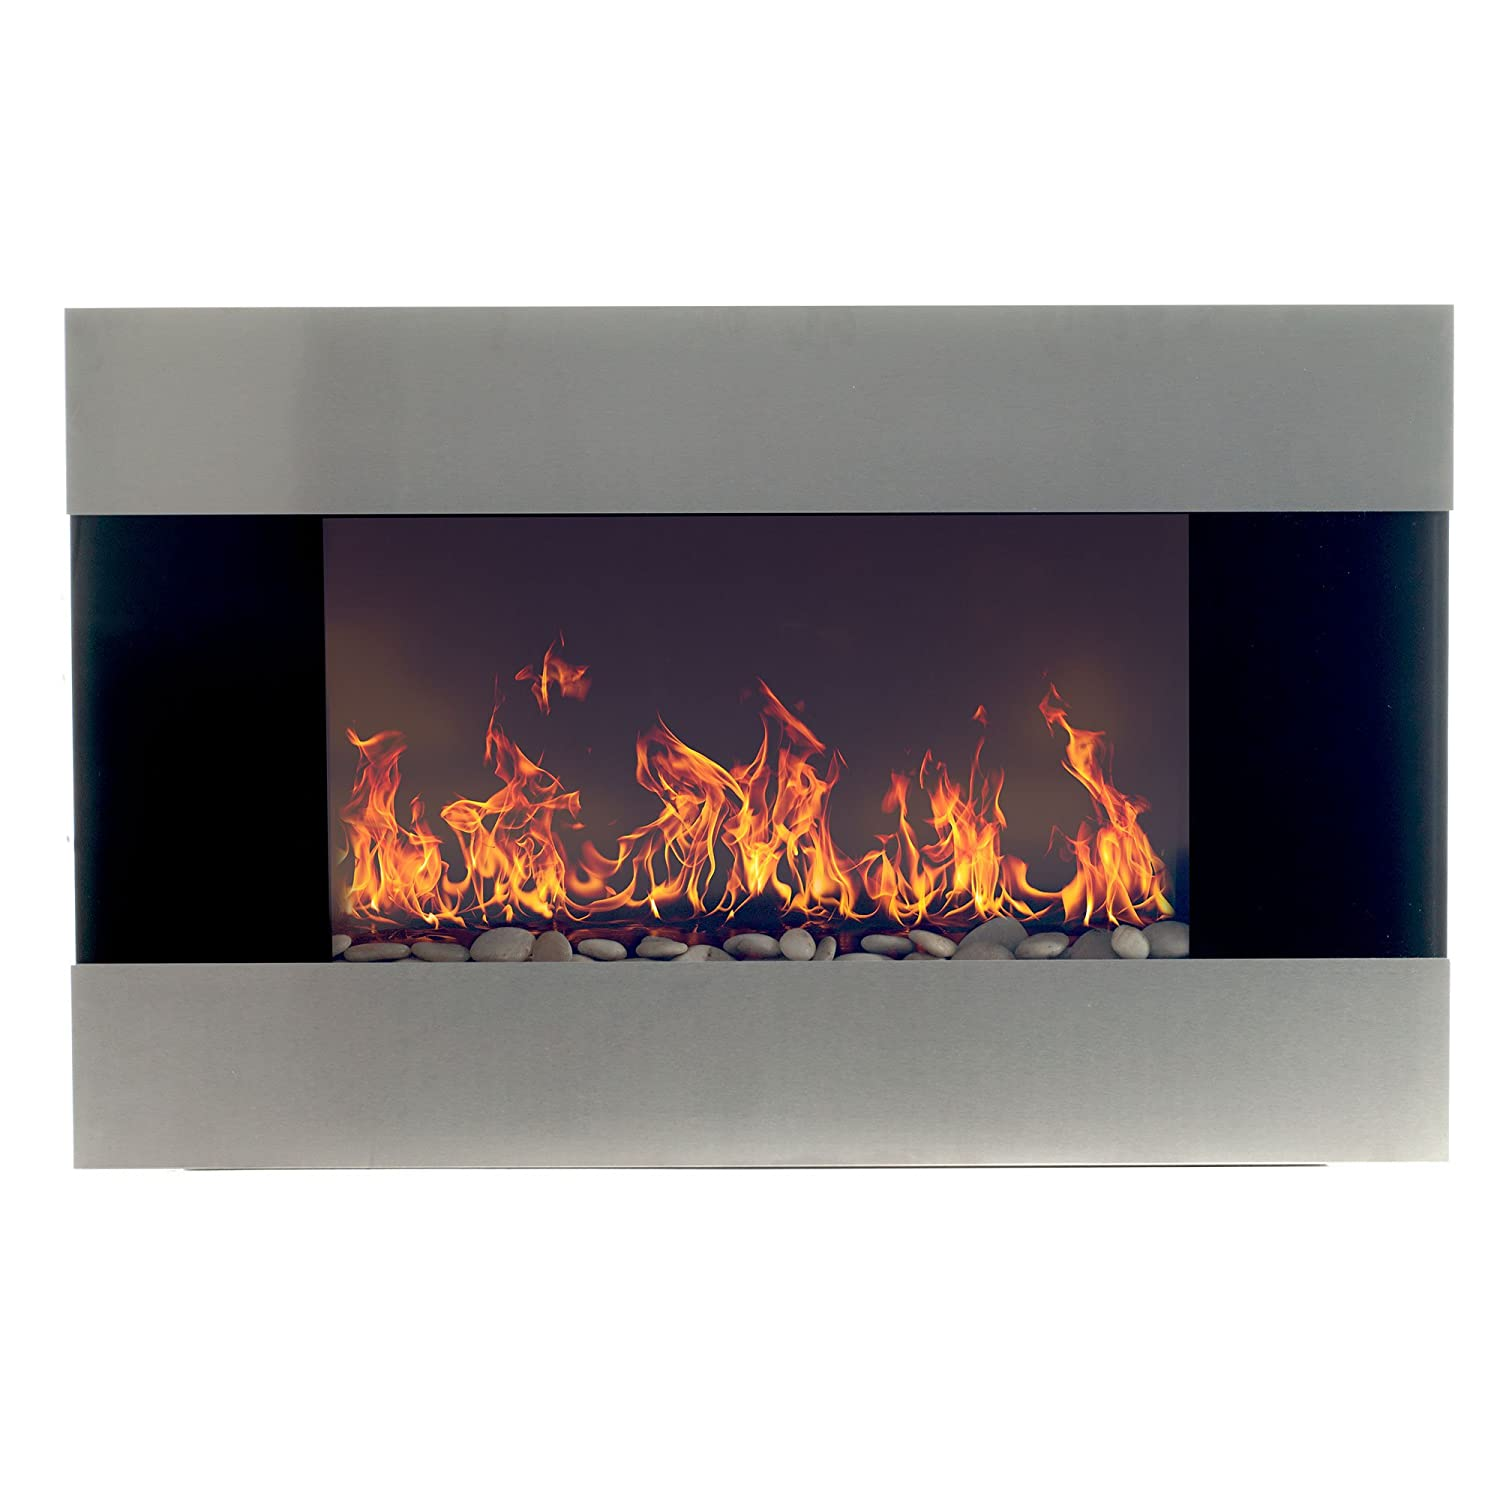 australia electric luxofire protection shop luxo fireplace flame lefedna realistic edna effect style overheat be online sale mantle on heater brown